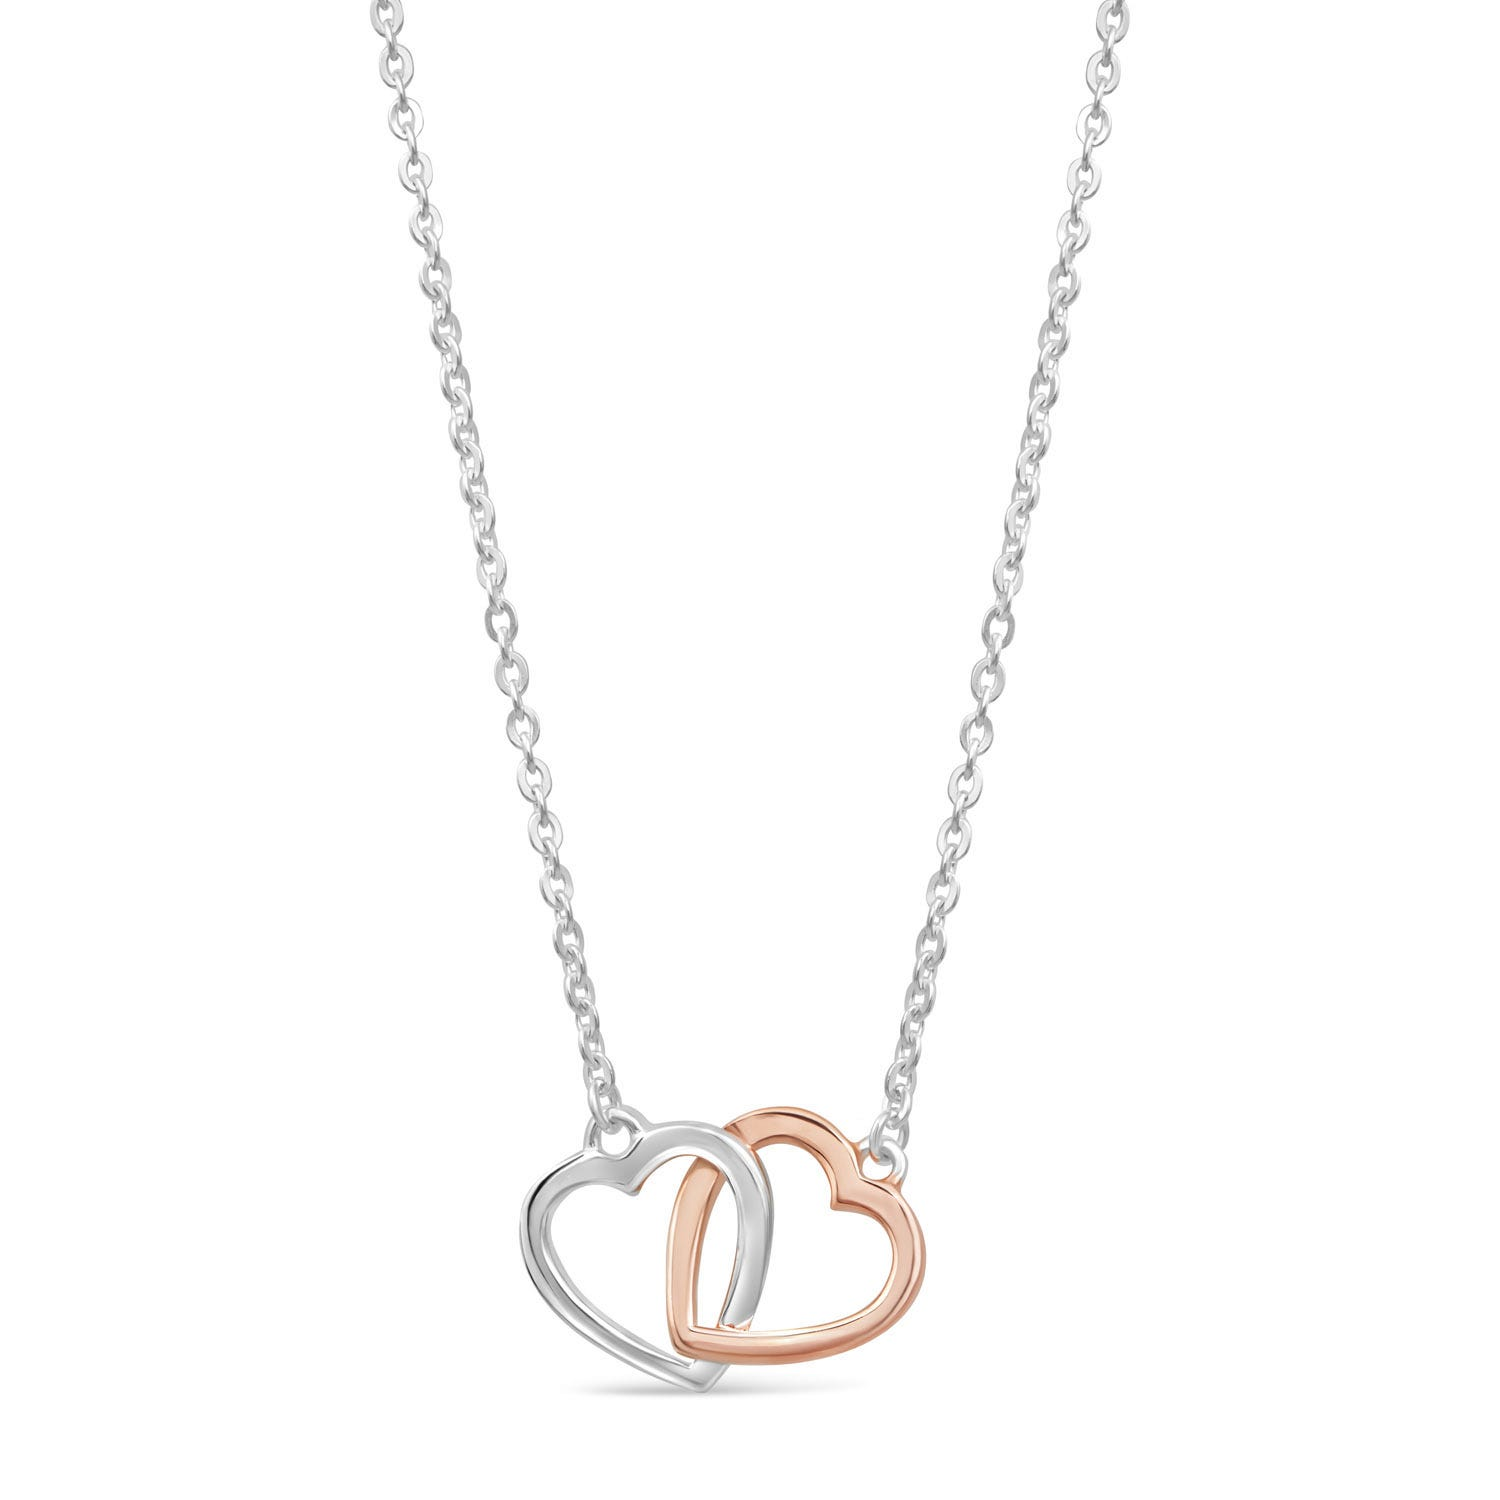 Silver and Rose Gold-Plated Interlocking Hearts Necklace